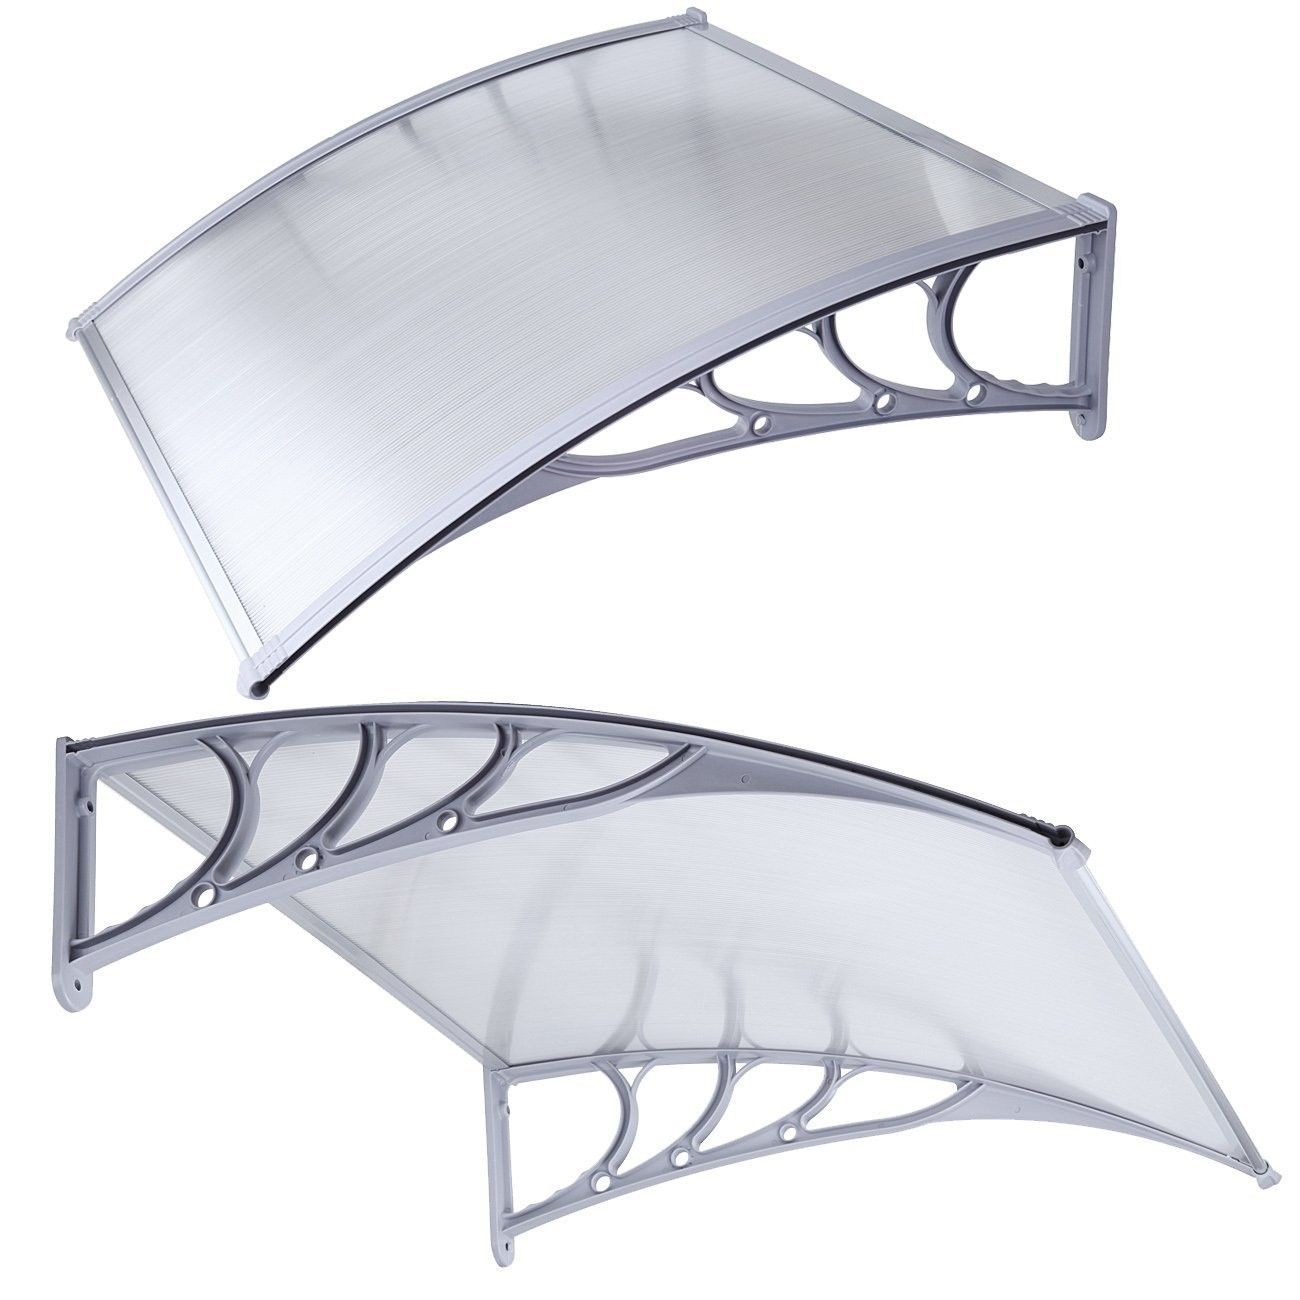 Canopy from polycarbonate do it yourself. Step by step installation instructions. Cost of materials 42